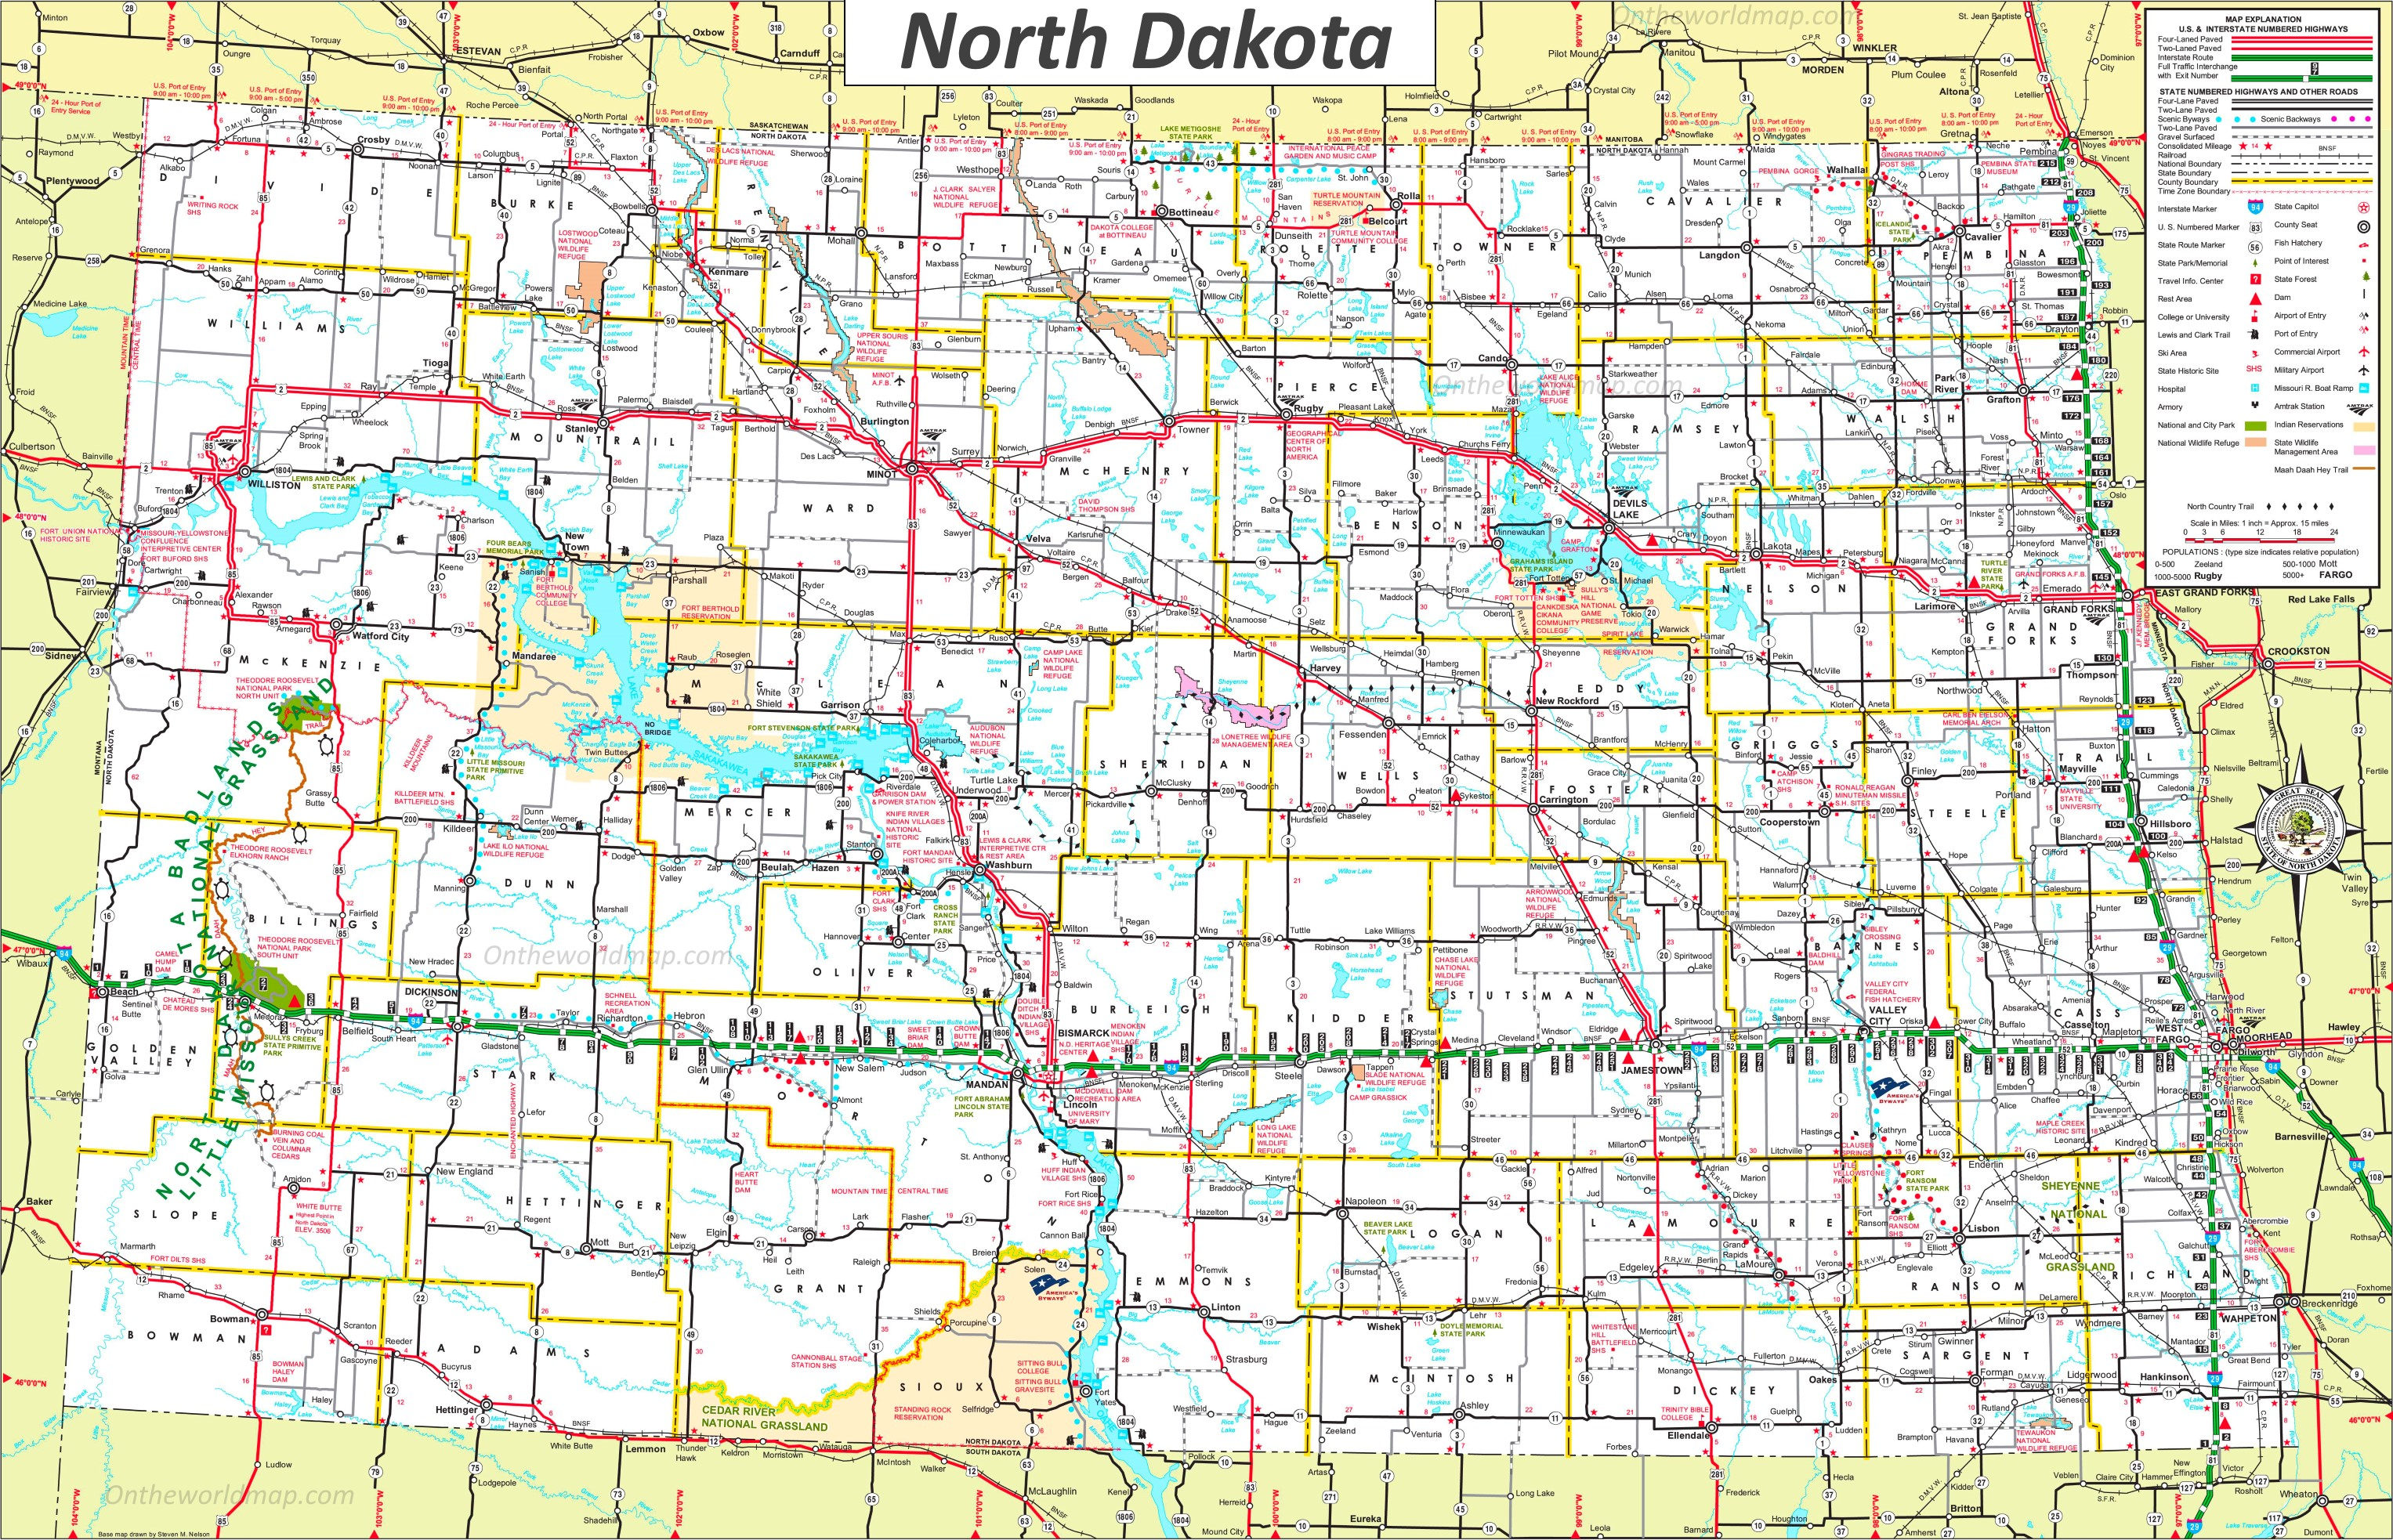 North Dakota State Maps USA Maps Of North Dakota ND - North dakota map usa